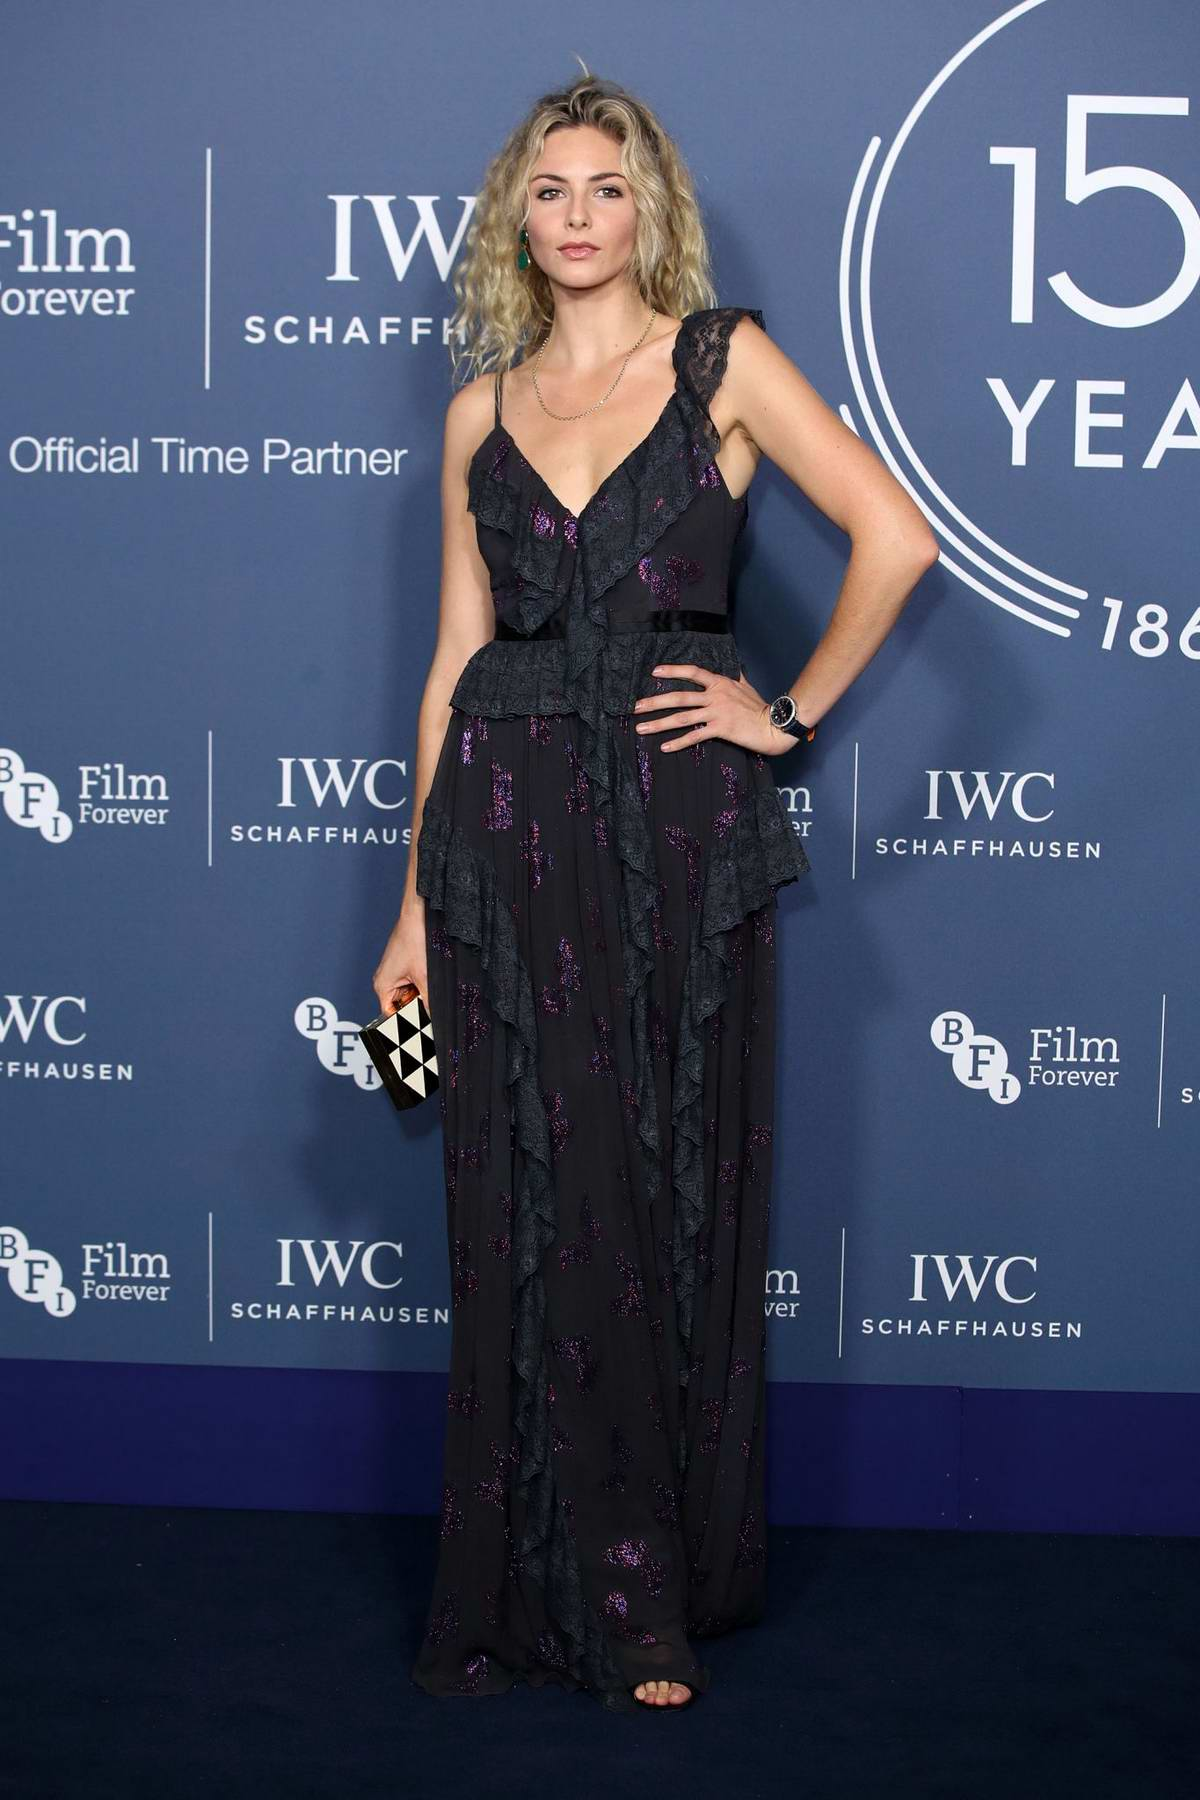 Tamsin Egerton attends the IWC Schaffhausen Filmmaker Bursary Award ceremony in London, UK